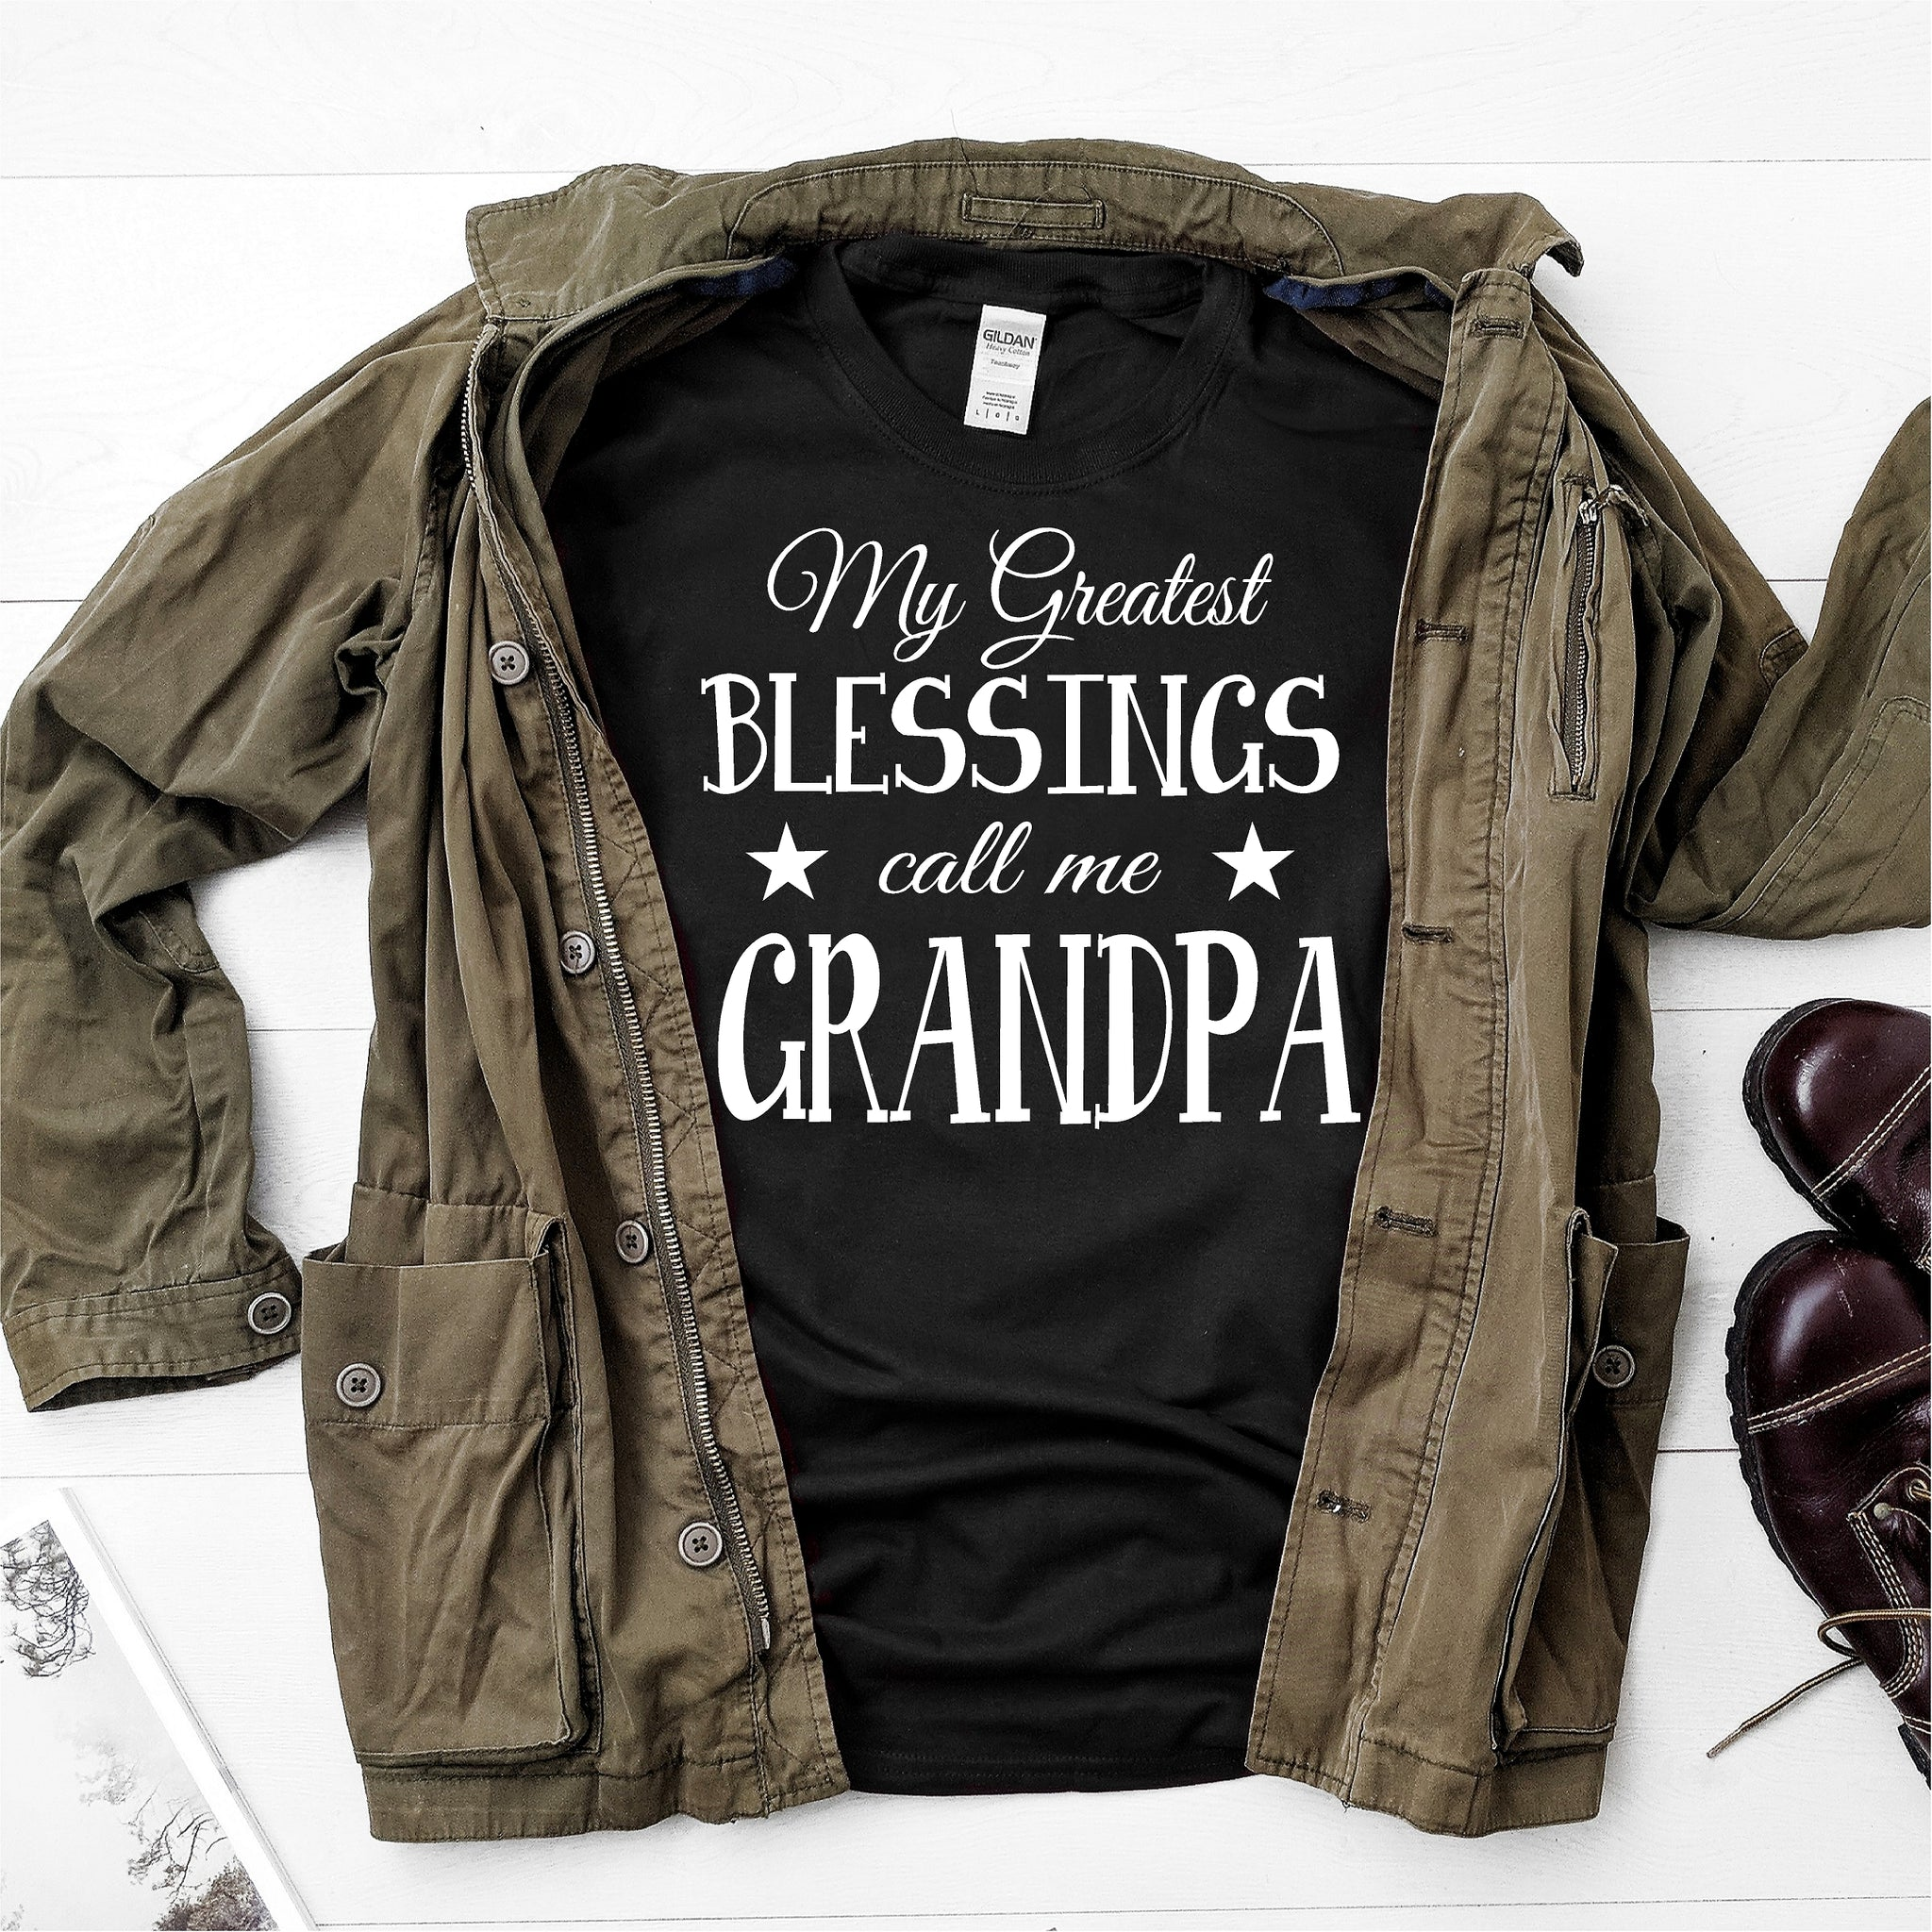 My Greatest Blessings Calls Me Grandpa -  Ultra Cotton Short Sleeve T-Shirt - DFHM29